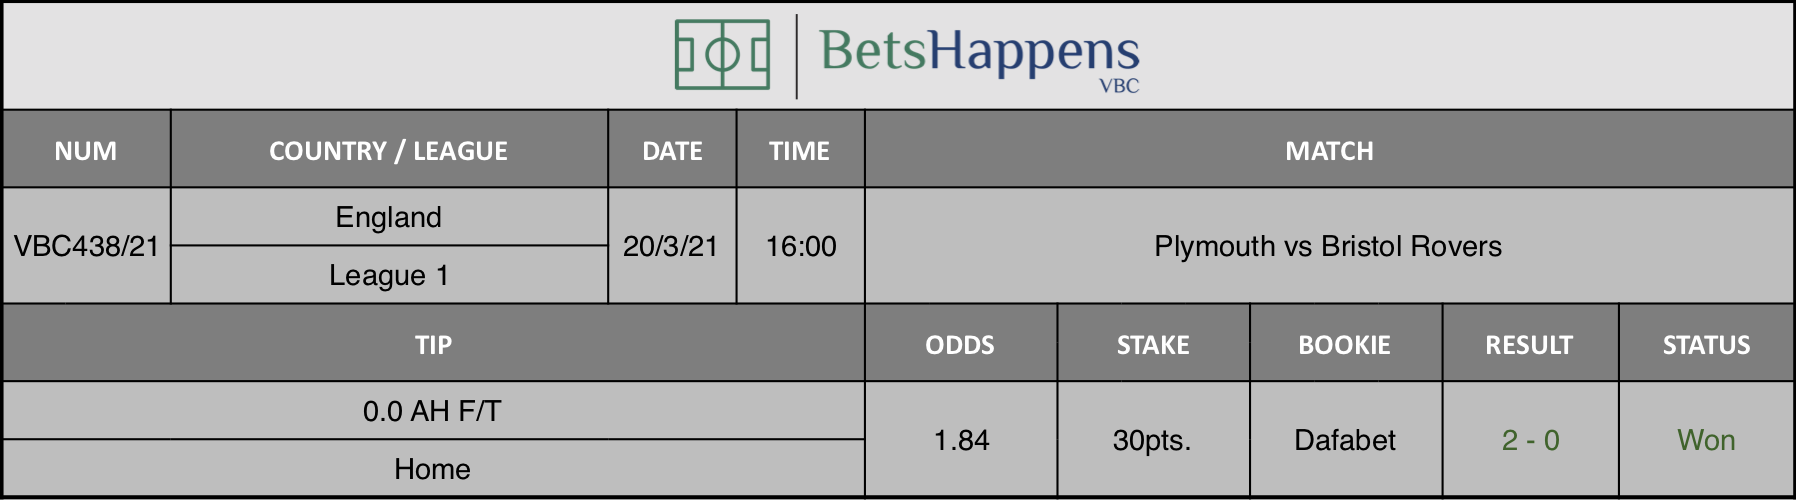 Results of our tip for the Plymouth vs Bristol Rovers match where 0,0 AH F/T  Home is recommended.